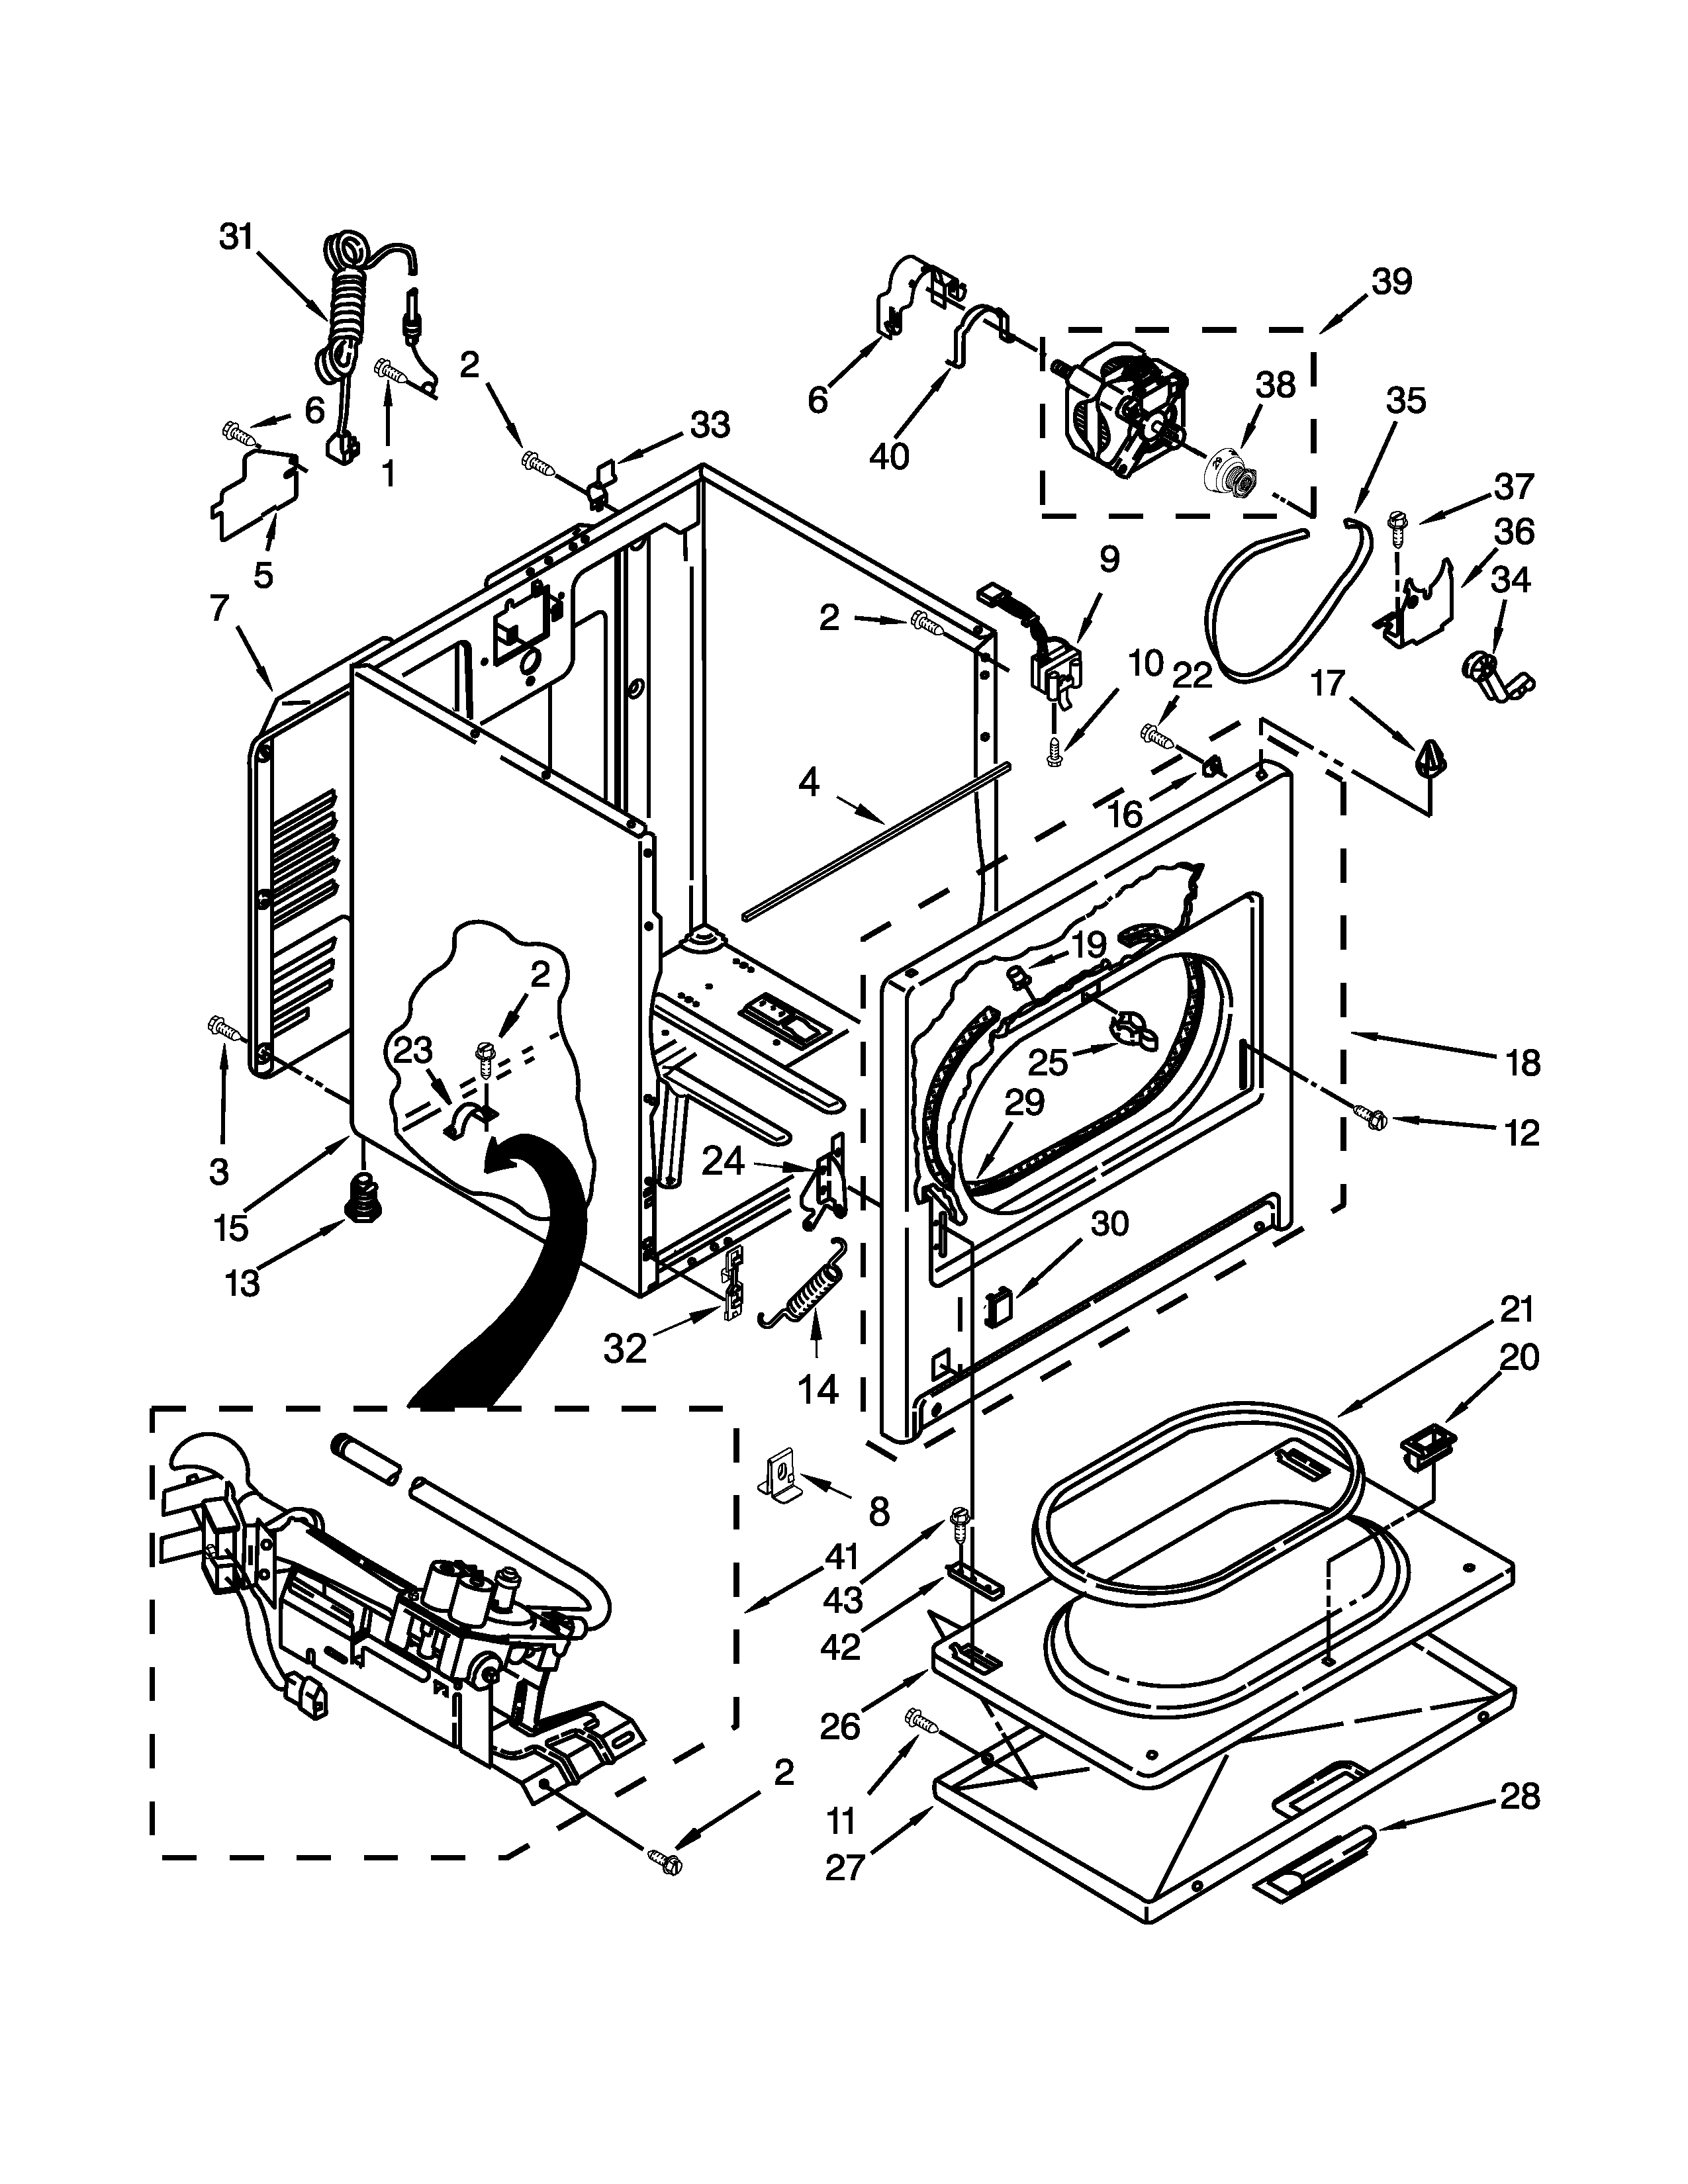 Whirlpool WGD5000DW2 cabinet parts diagram